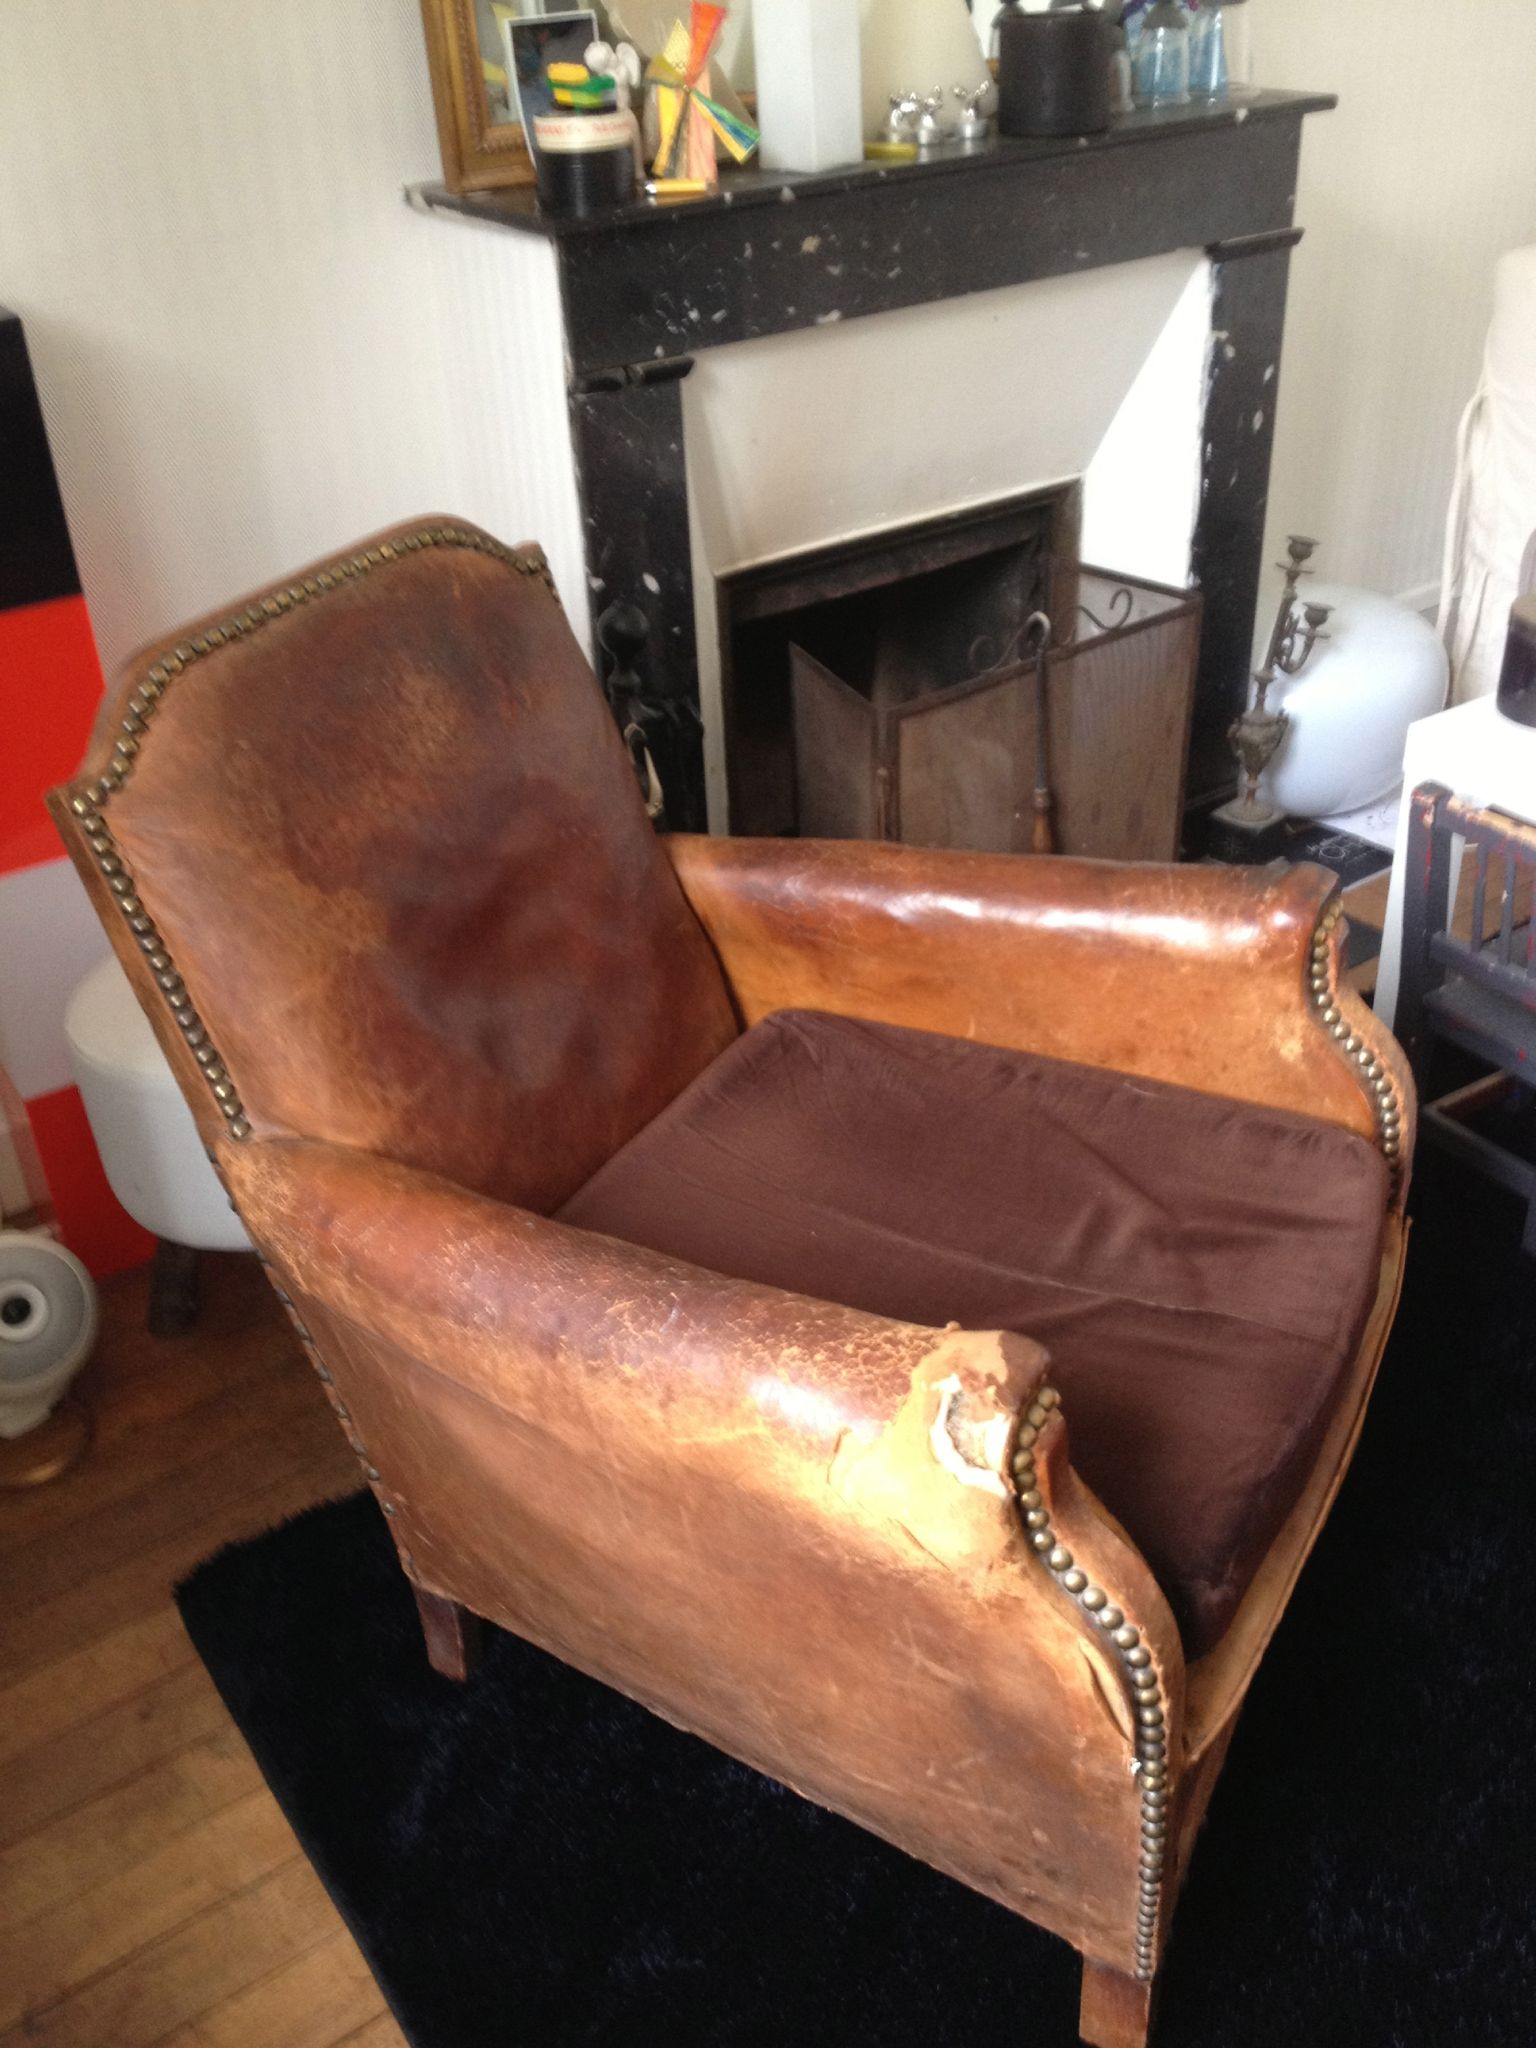 vieux fauteuil club clout dans son jus vendu ma brocante nantes. Black Bedroom Furniture Sets. Home Design Ideas